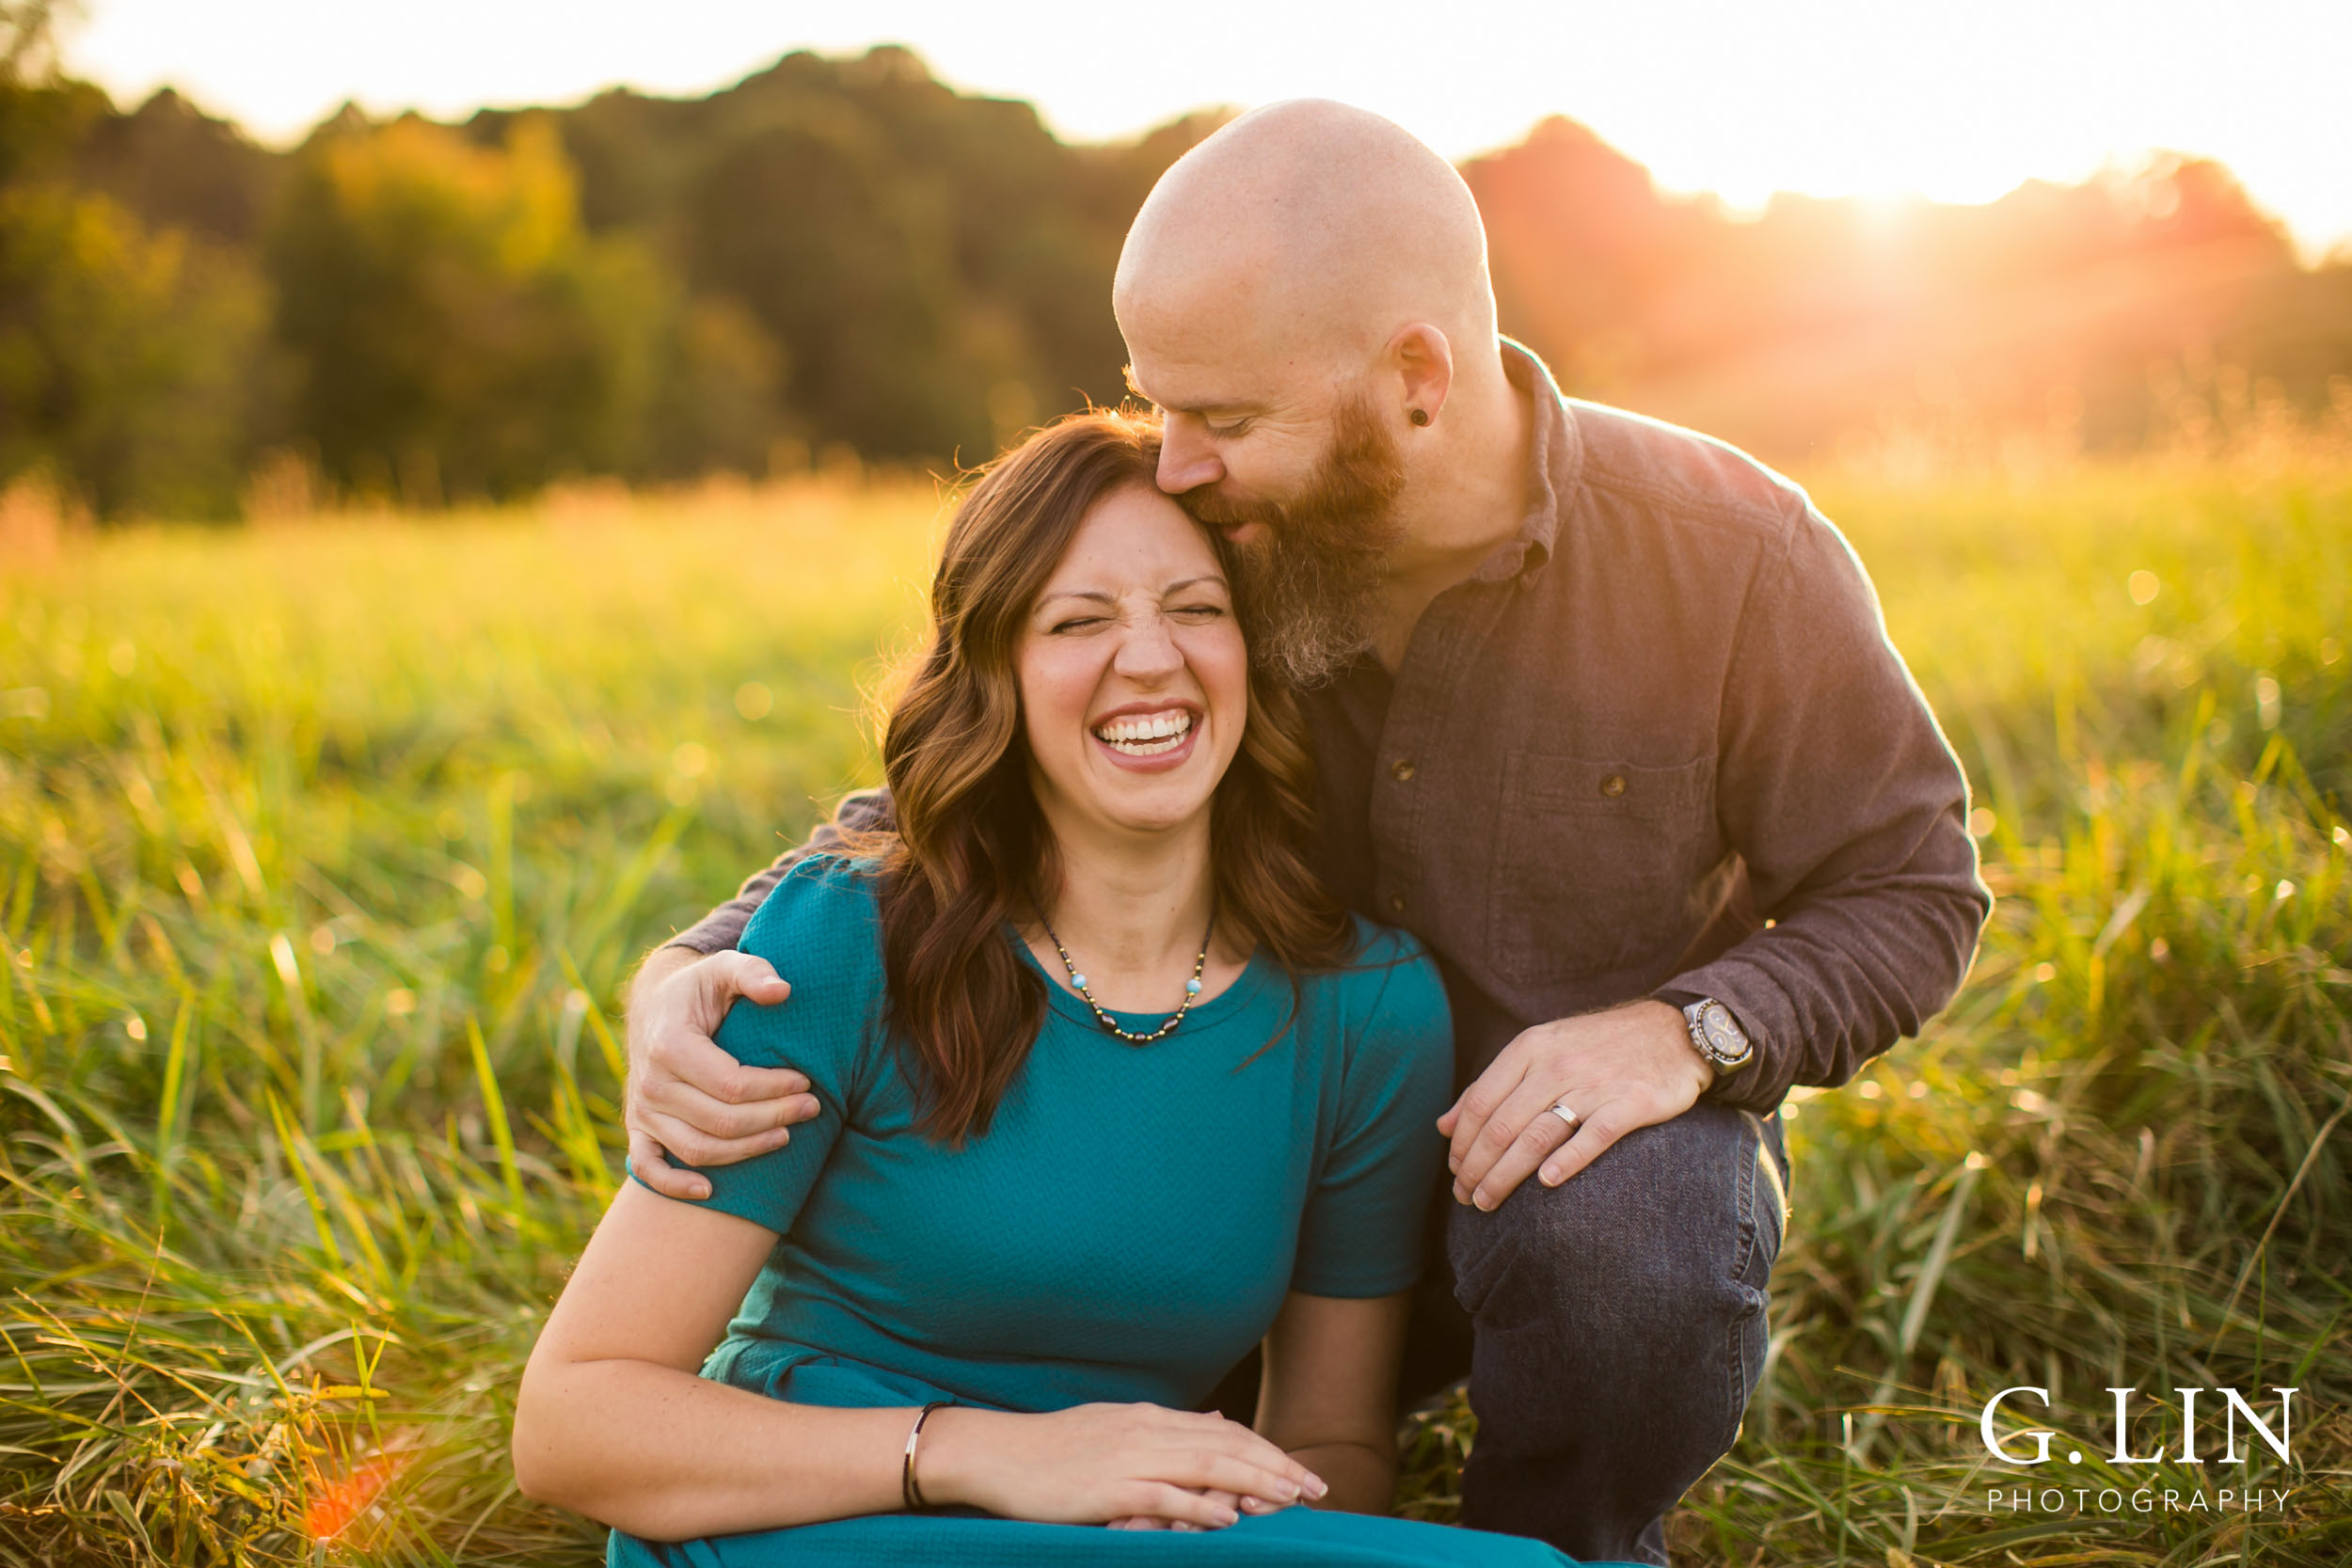 Raleigh Family Photographer | G. Lin Photography | Husband kissing wife's head